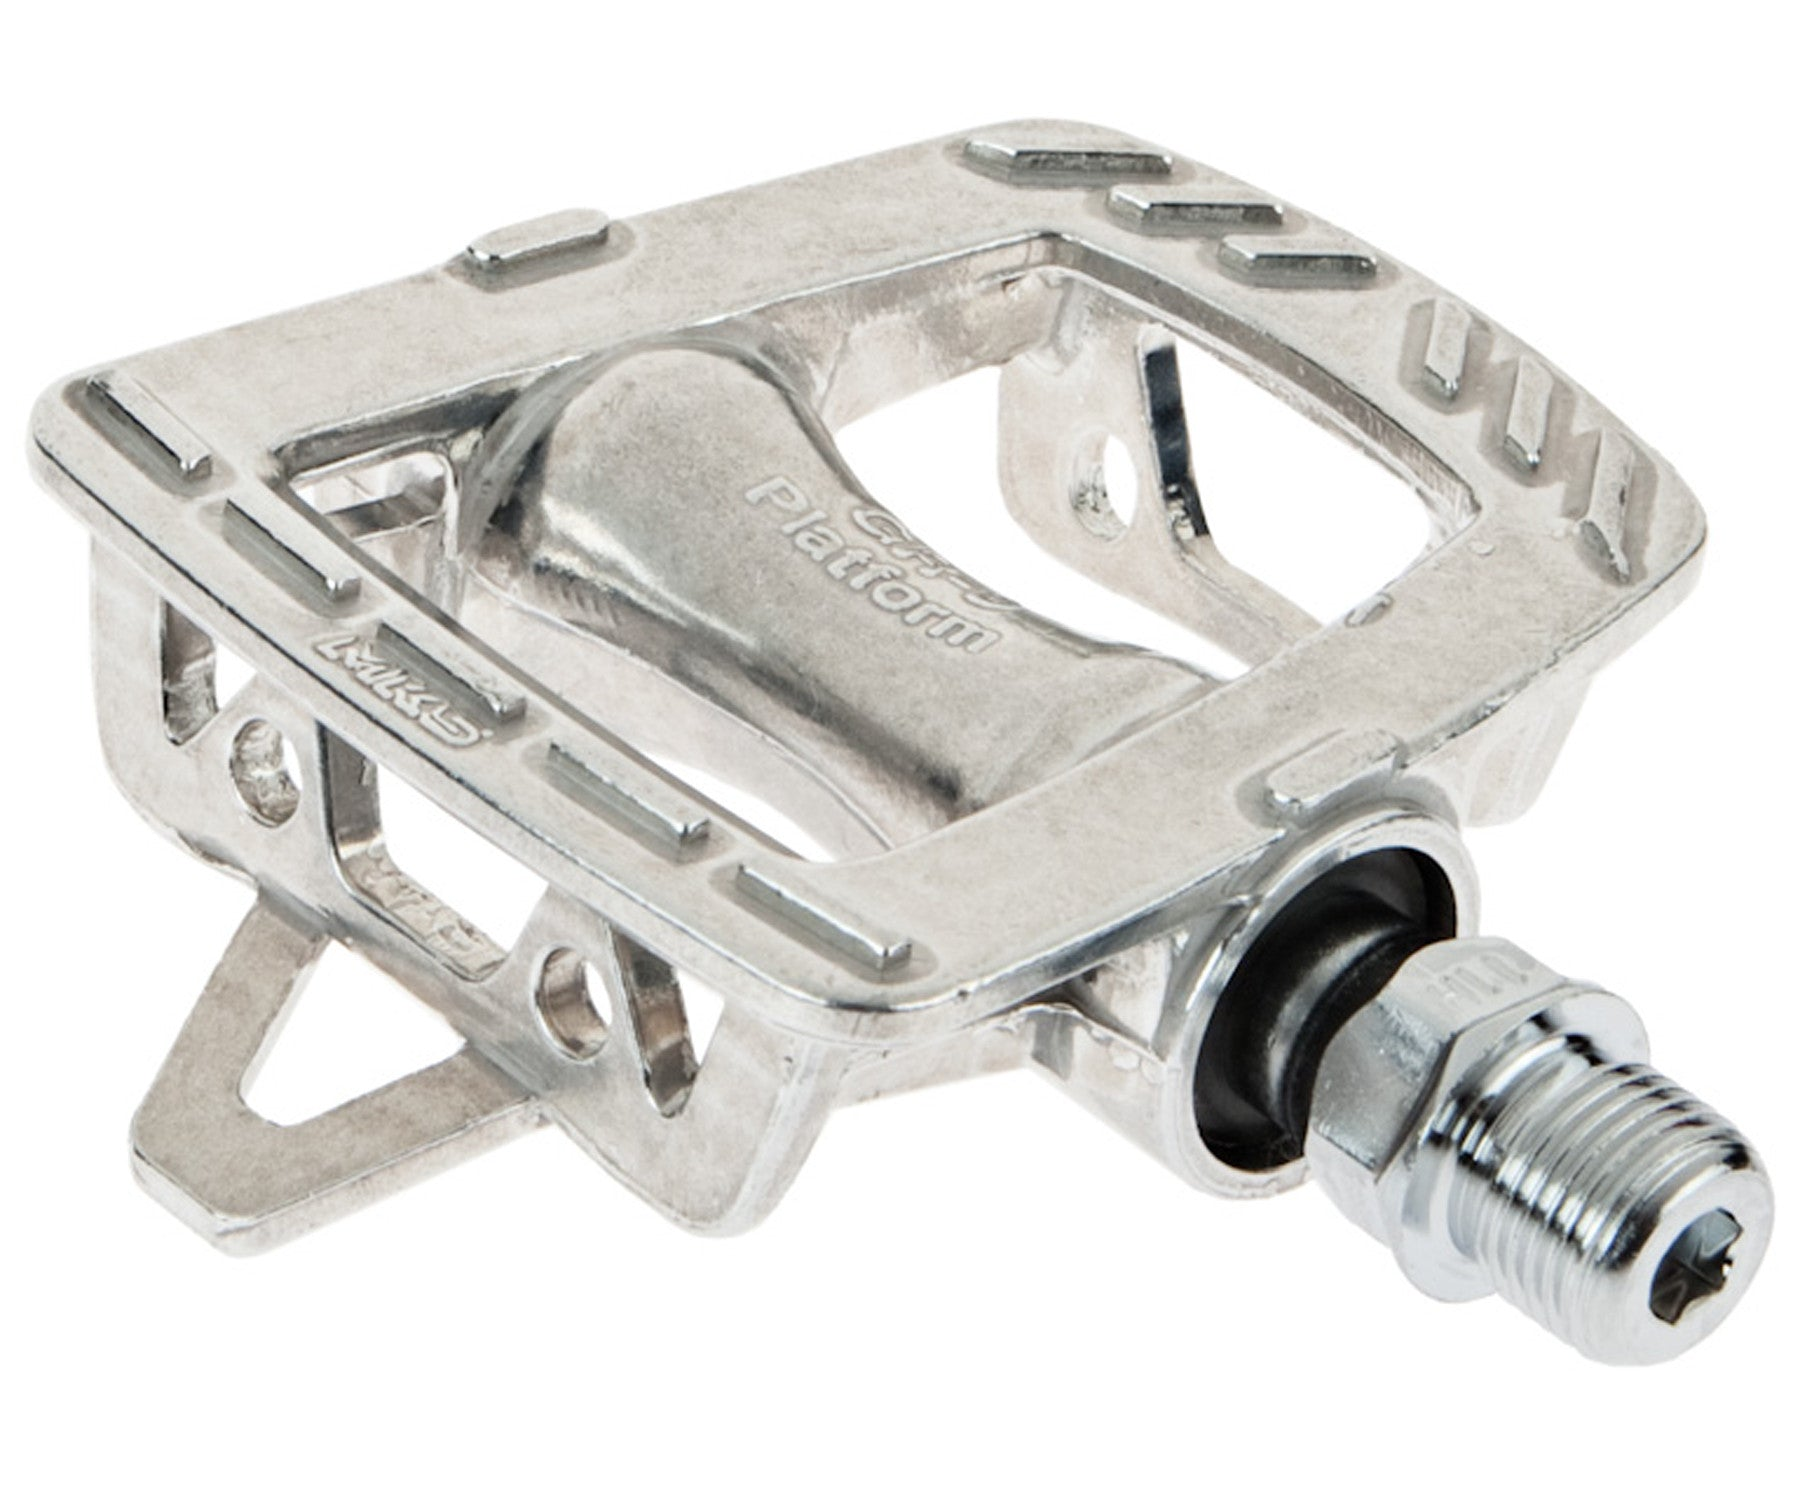 MKS GR-9 pedals